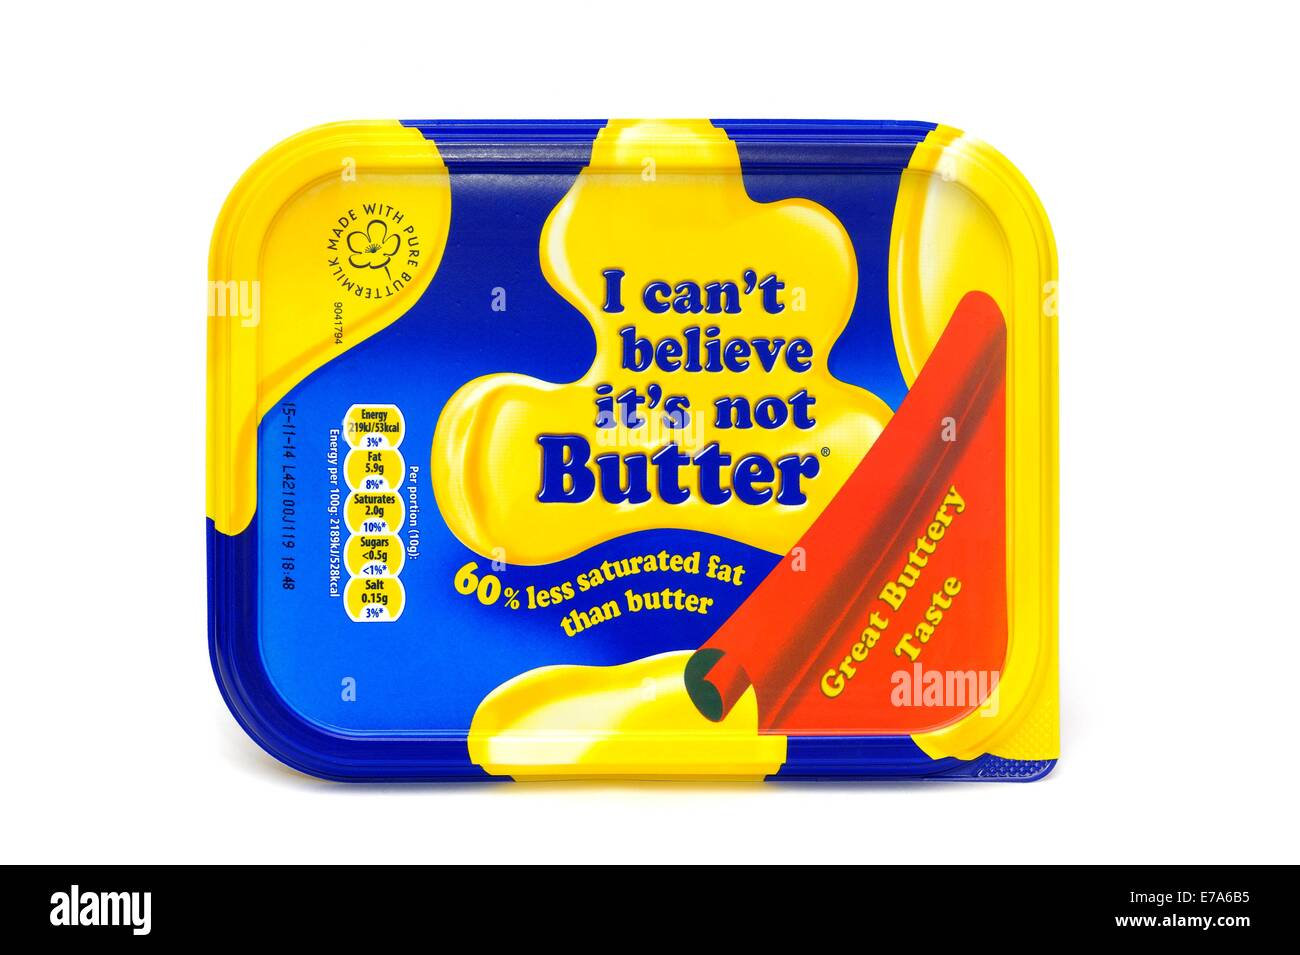 I can't believe its not butter - Stock Image